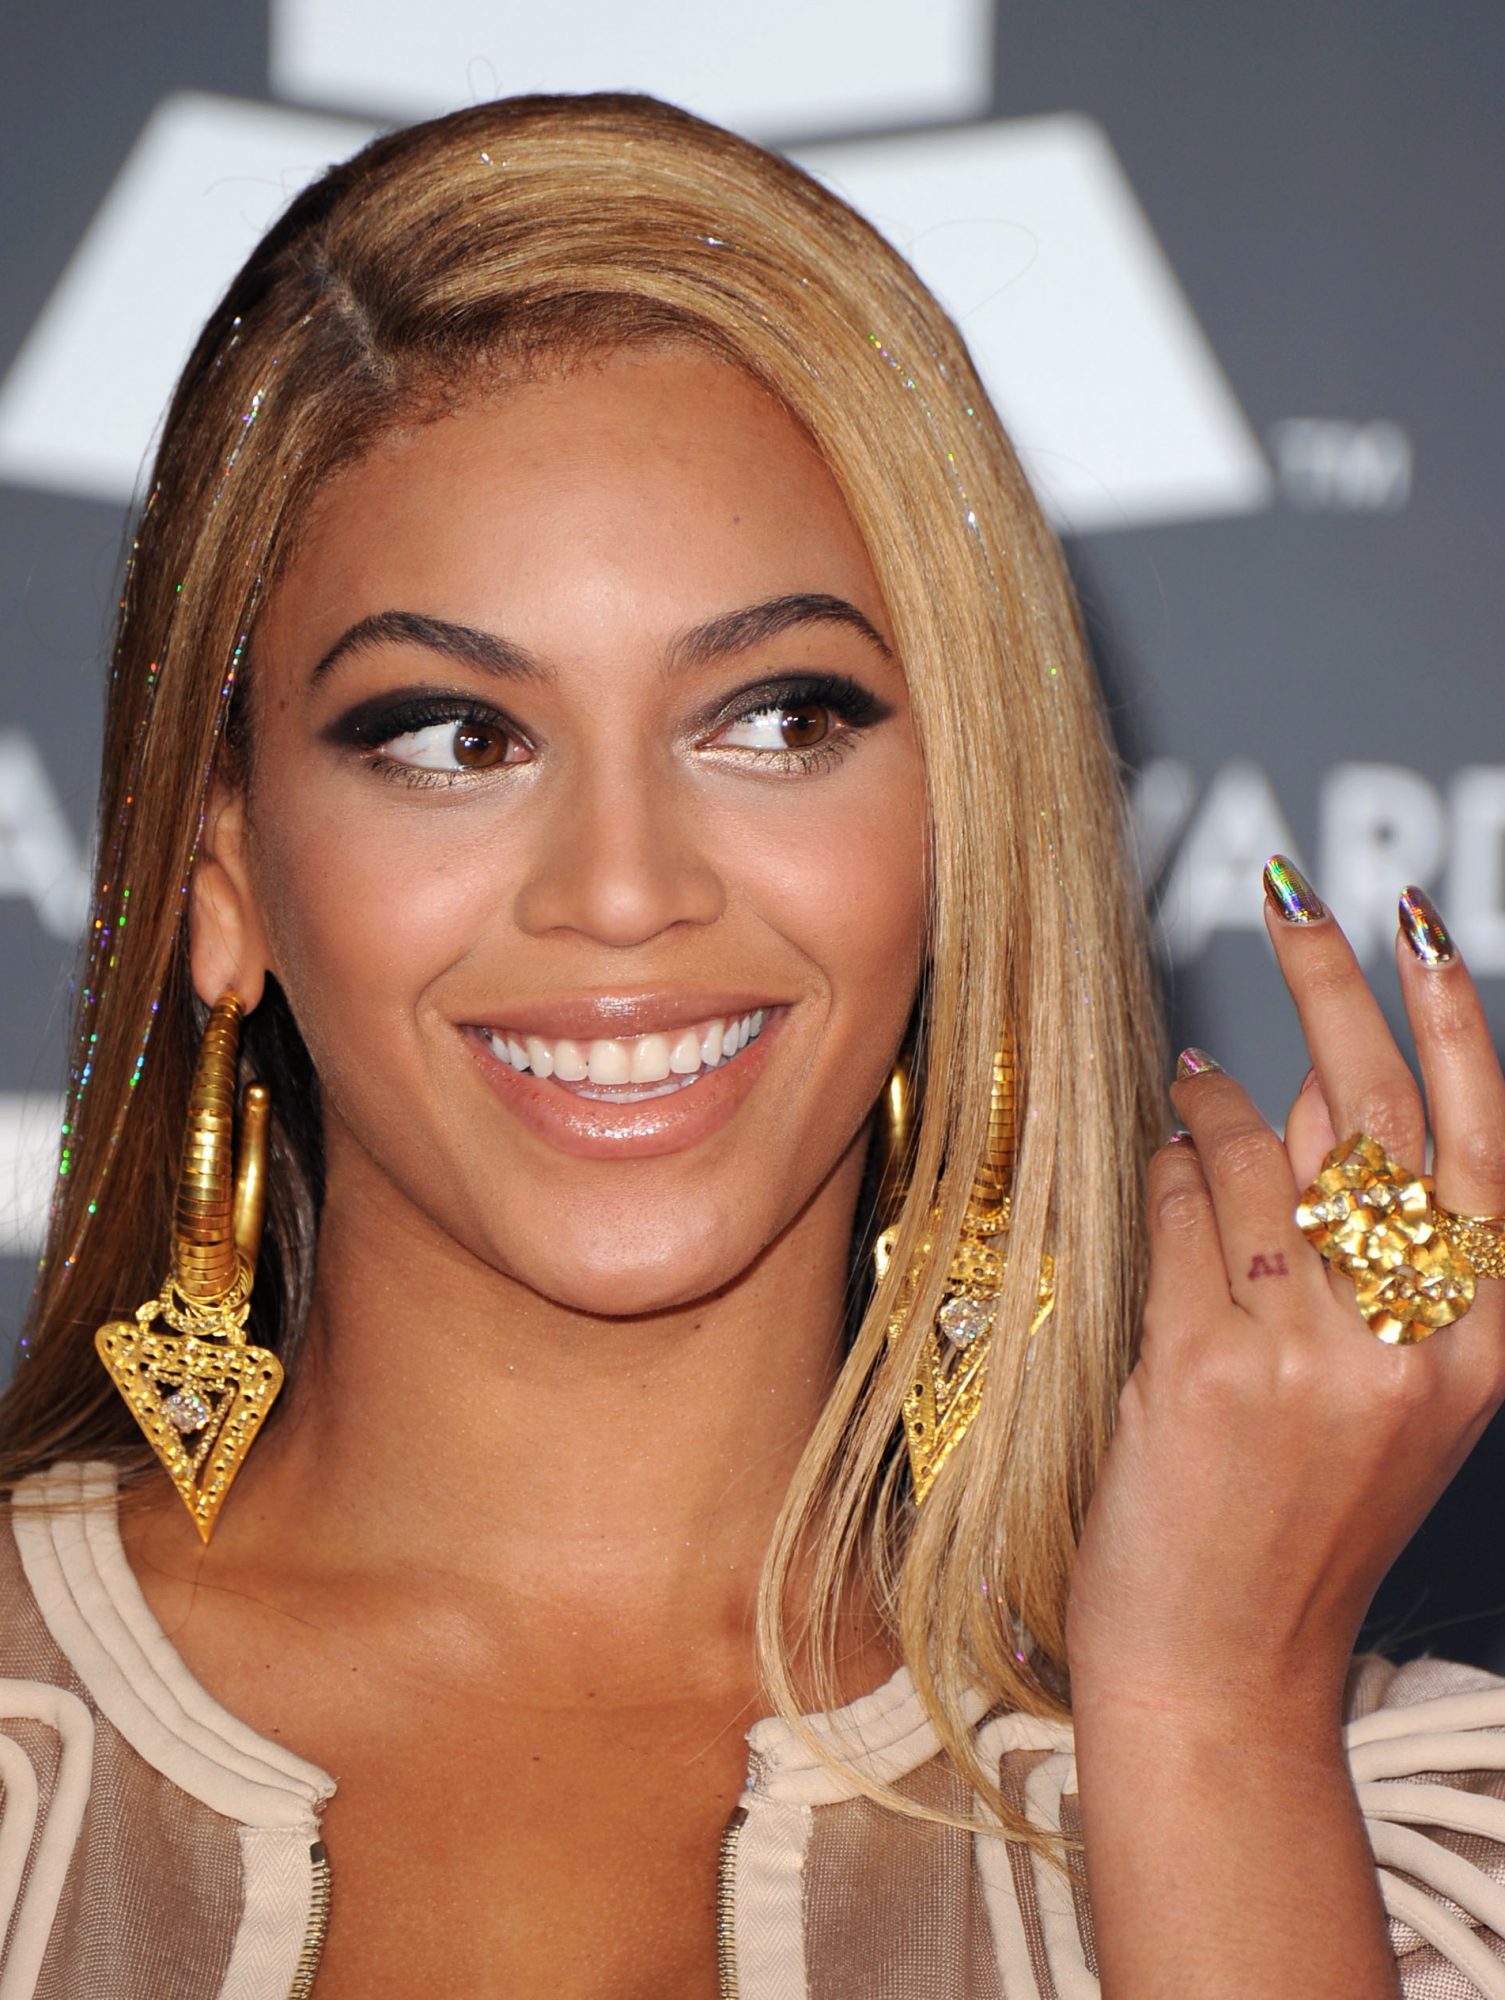 Beyonce Tattoo 2010 - Embed